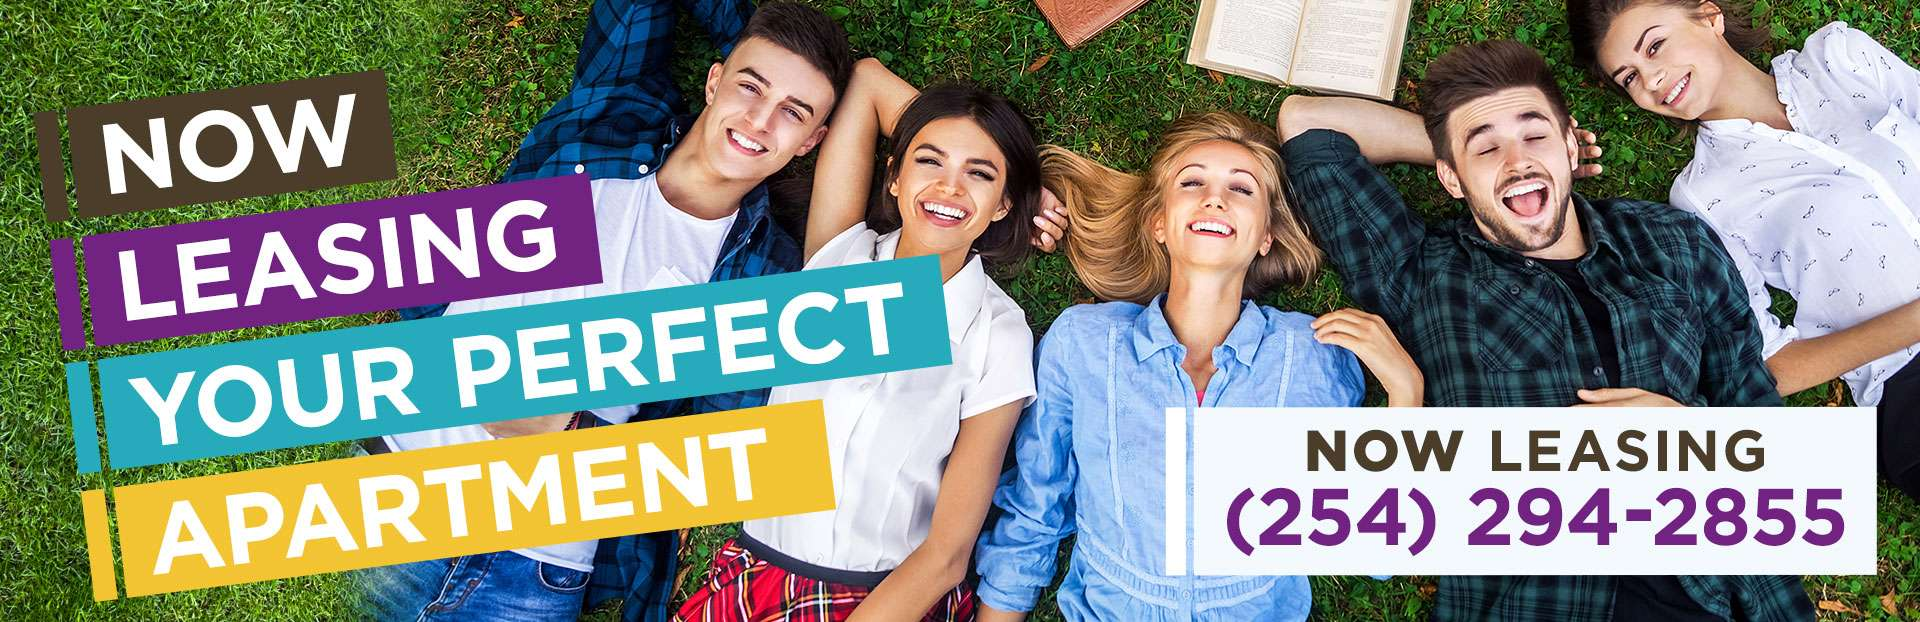 Now Leasing Your Perfect Student Home